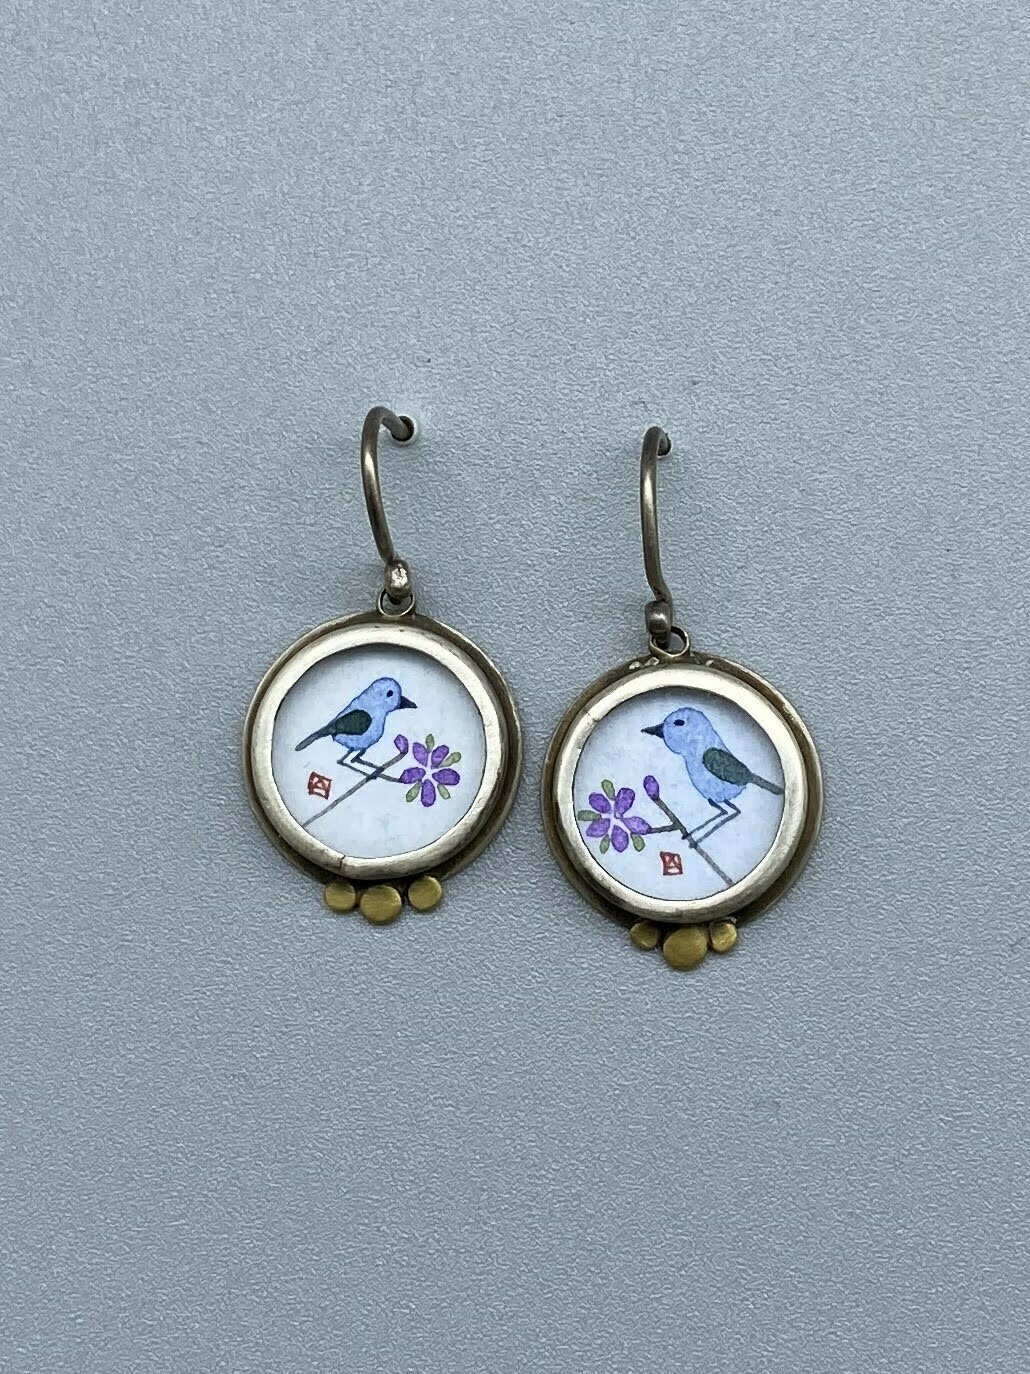 Hand Painted Bluebird Earrings w/22k Gold Accents & Sterling Silver - Ananda Khalsa - Northampton MA